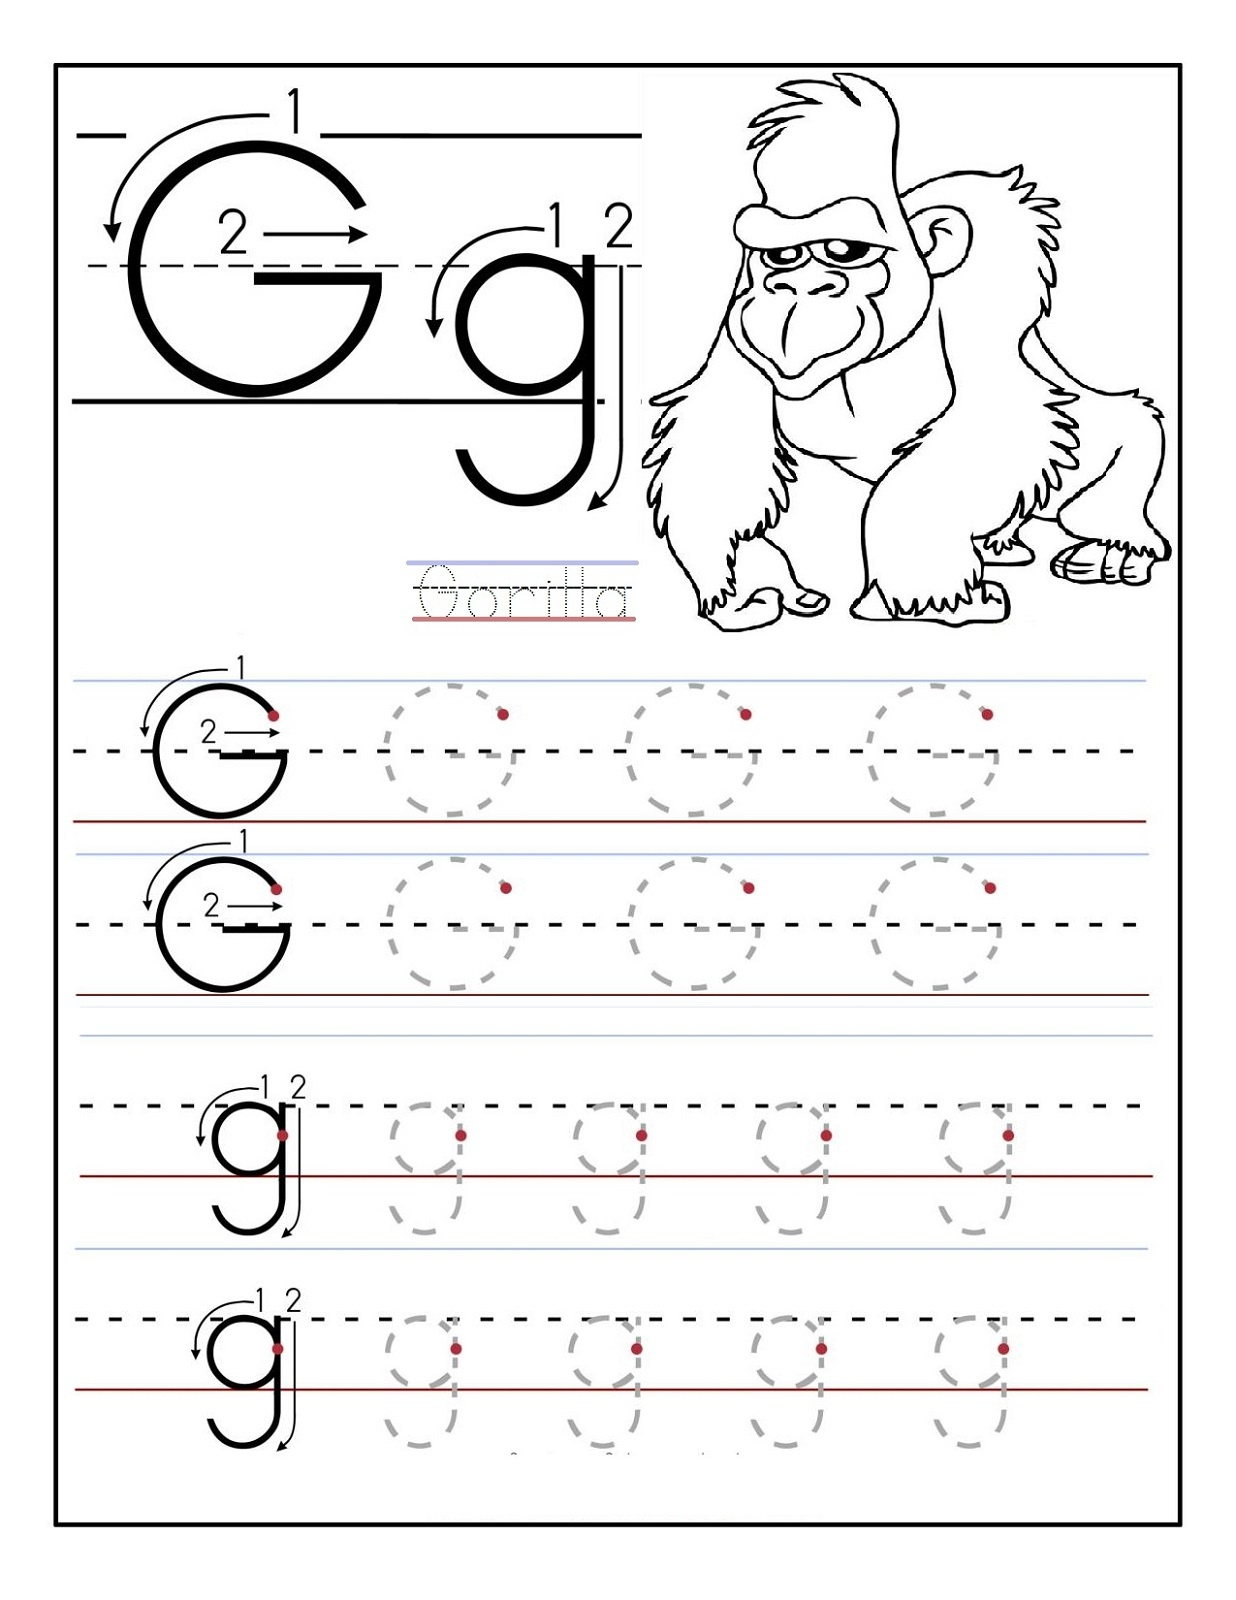 Free Printable Activities For Kids | Educative Printable - Free Printable Activities